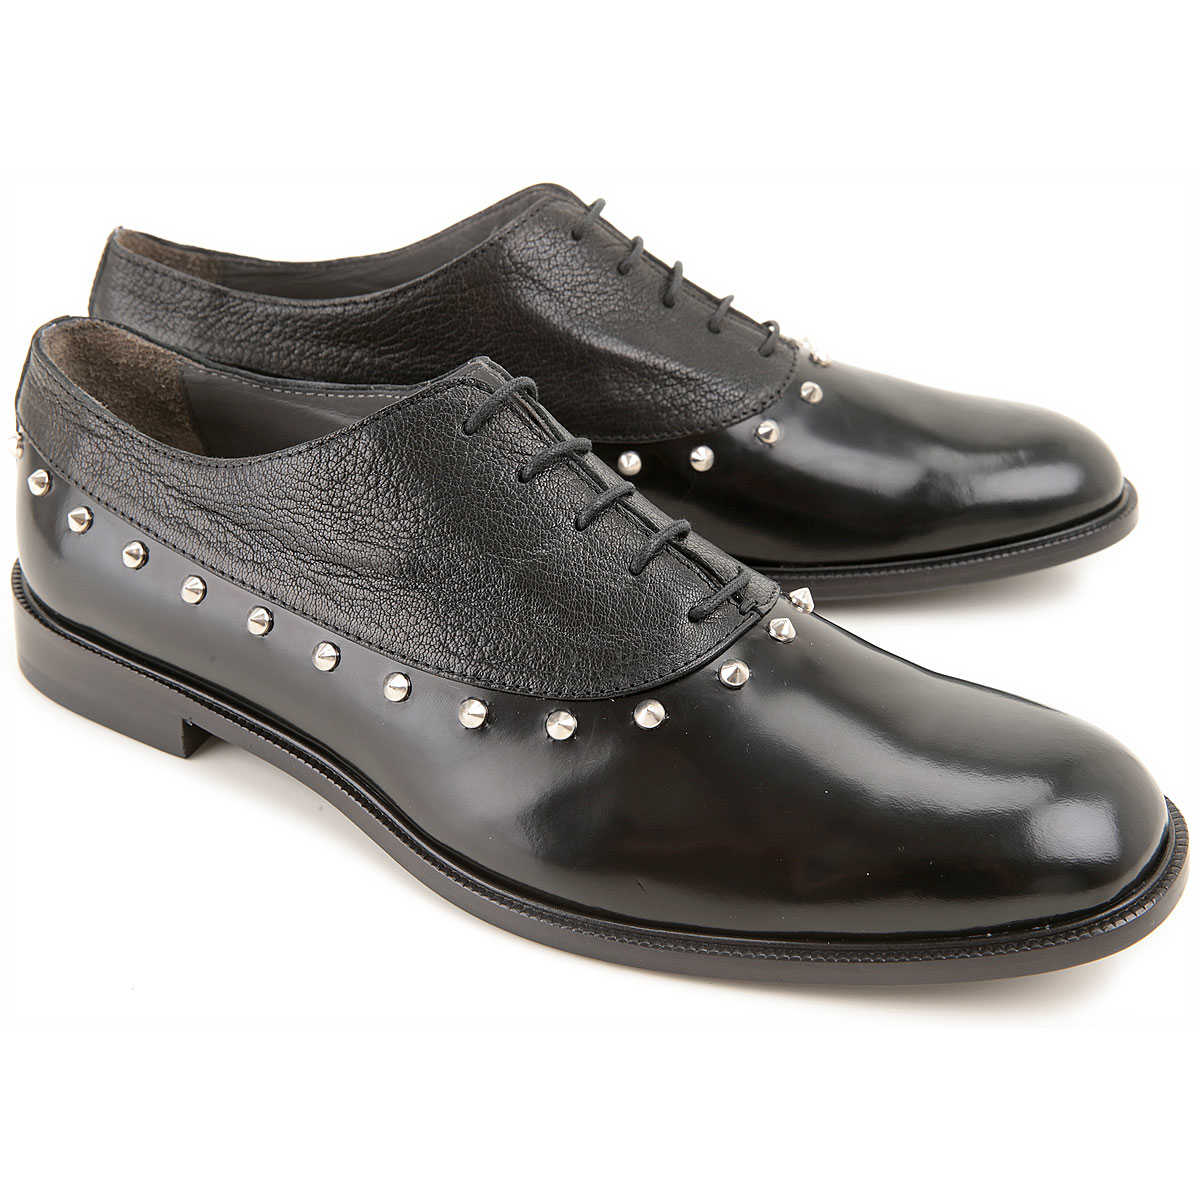 Giacomorelli Lace Up Shoes for Men Oxfords Derbies and Brogues On Sale SE - GOOFASH